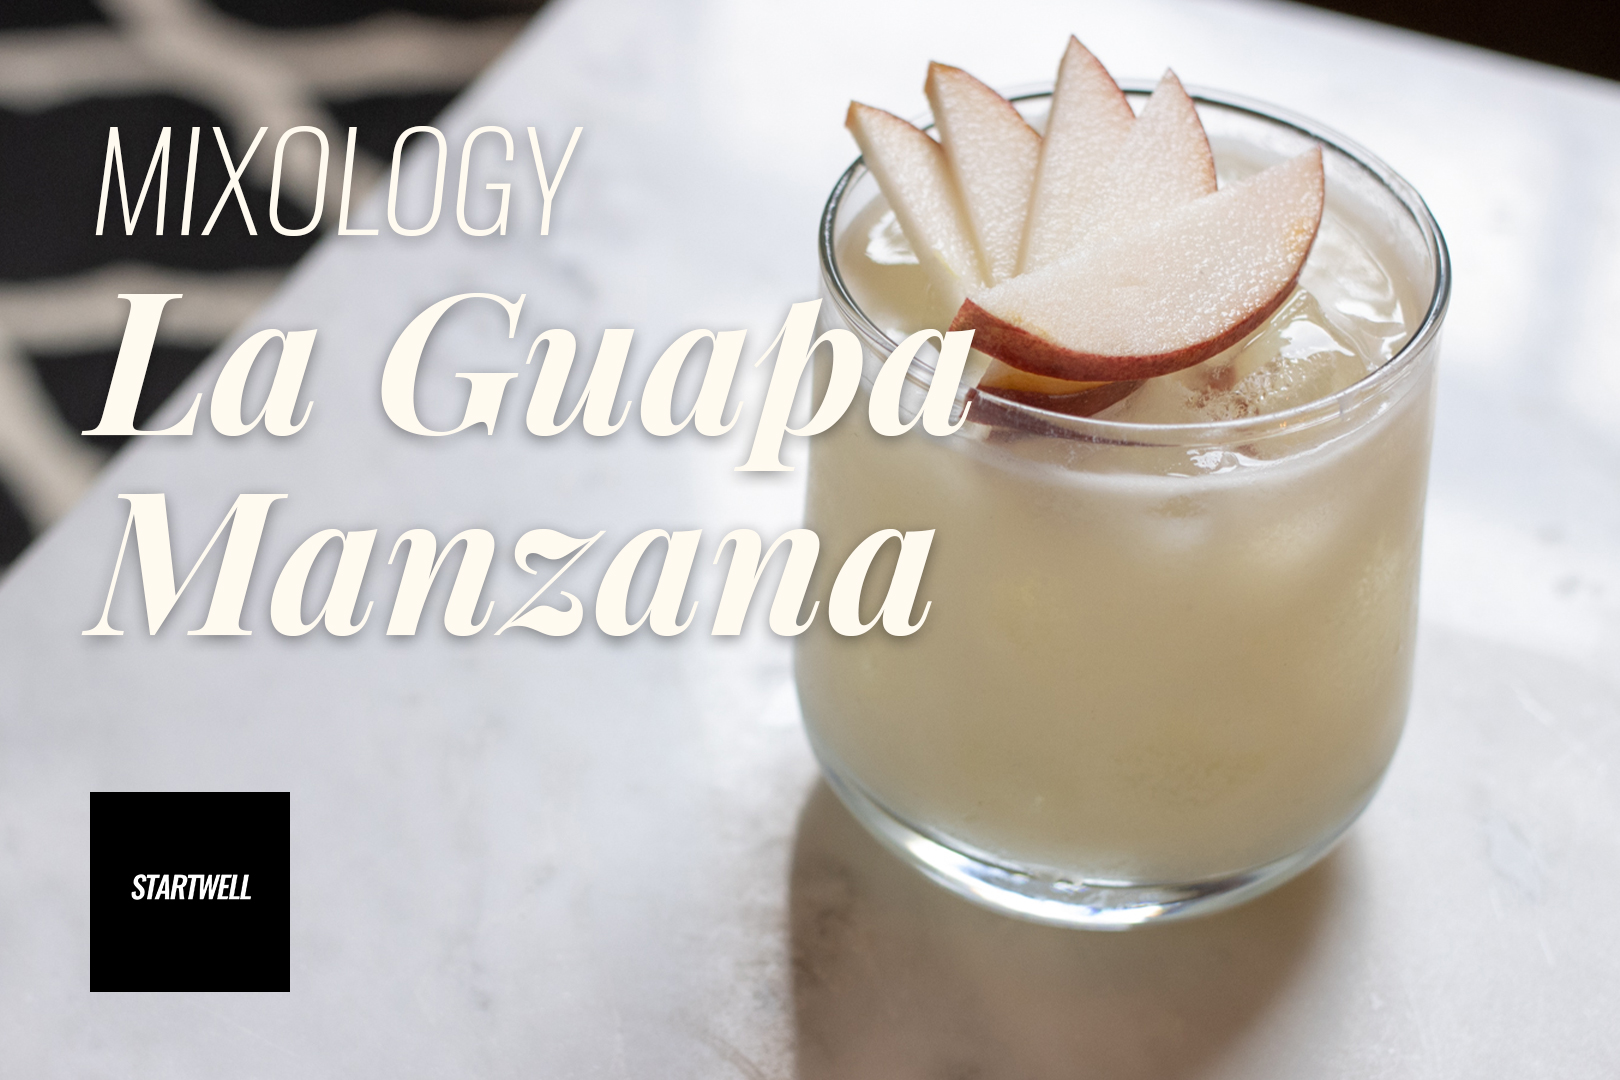 Mixology with StartWell - La Guapa Manzana